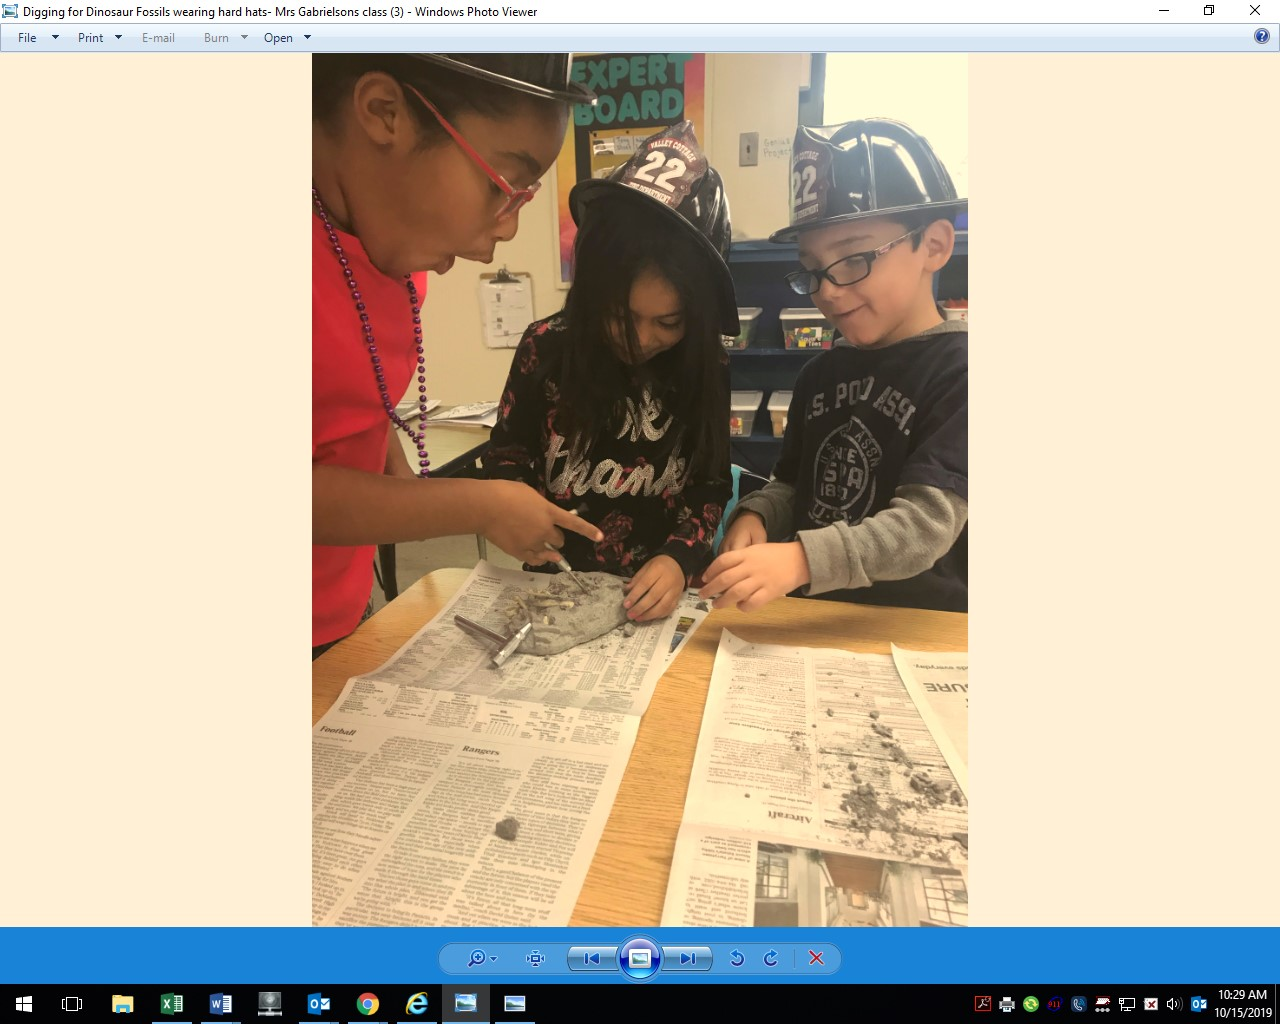 Digging for Dinosaur Fossils wearing hard hats! Mrs.Gabrielson's class